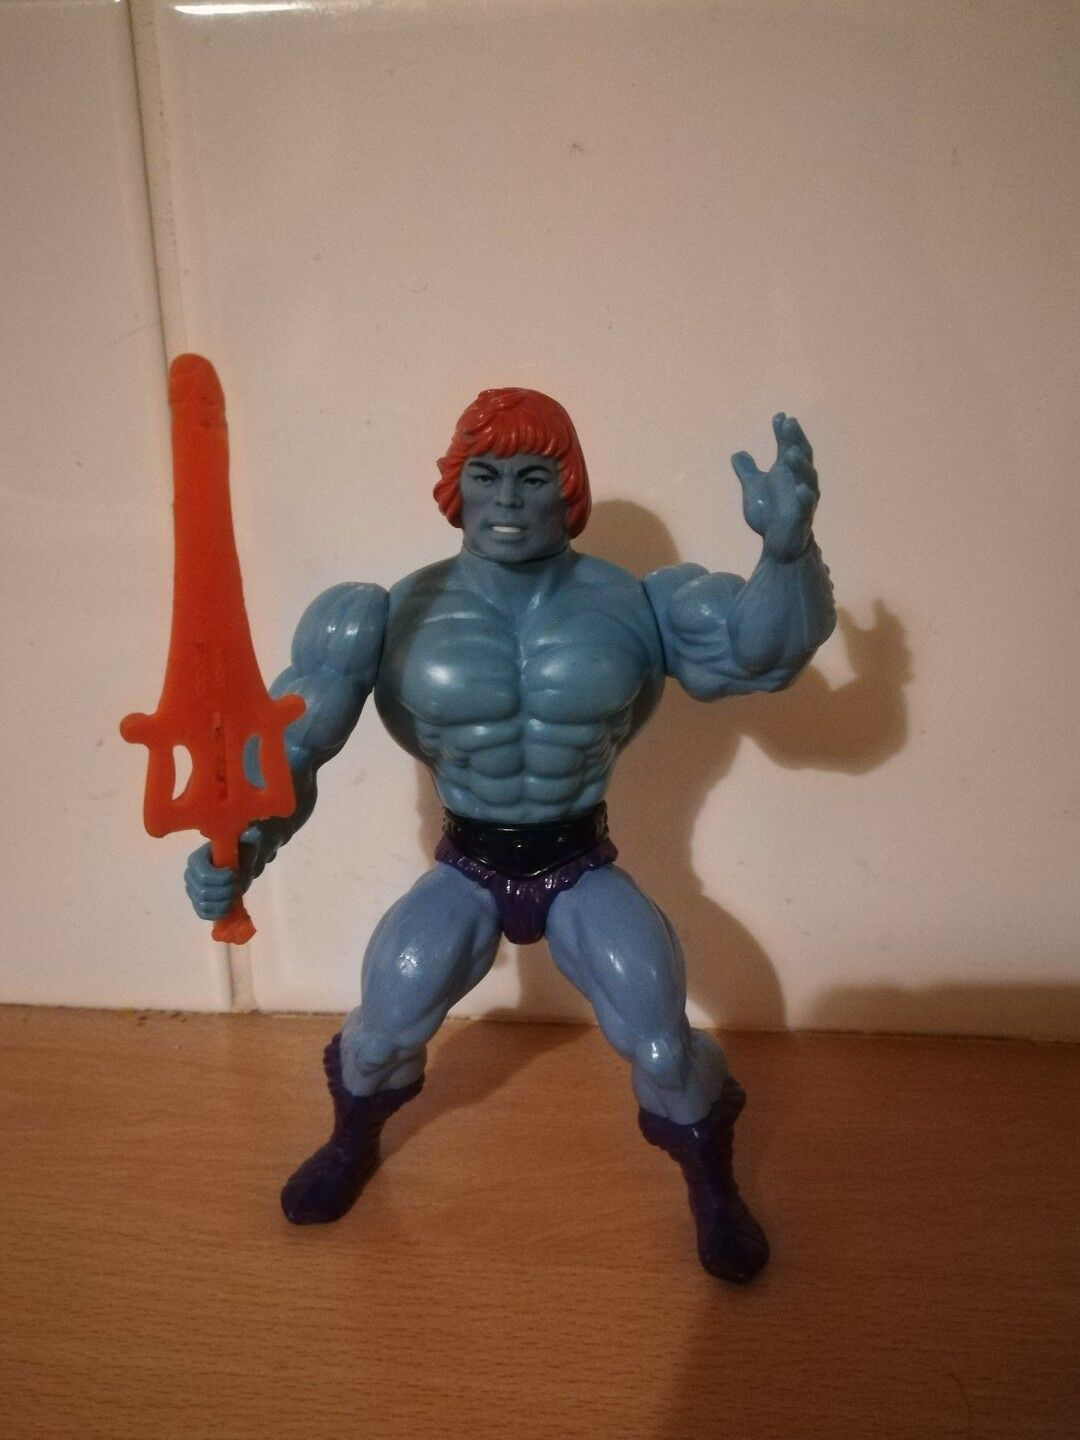 HE-MAN AND THE MASTERS OF THE UNIVERSE FAKER HE-MAN _VINTAGE BY MATTEL 1981